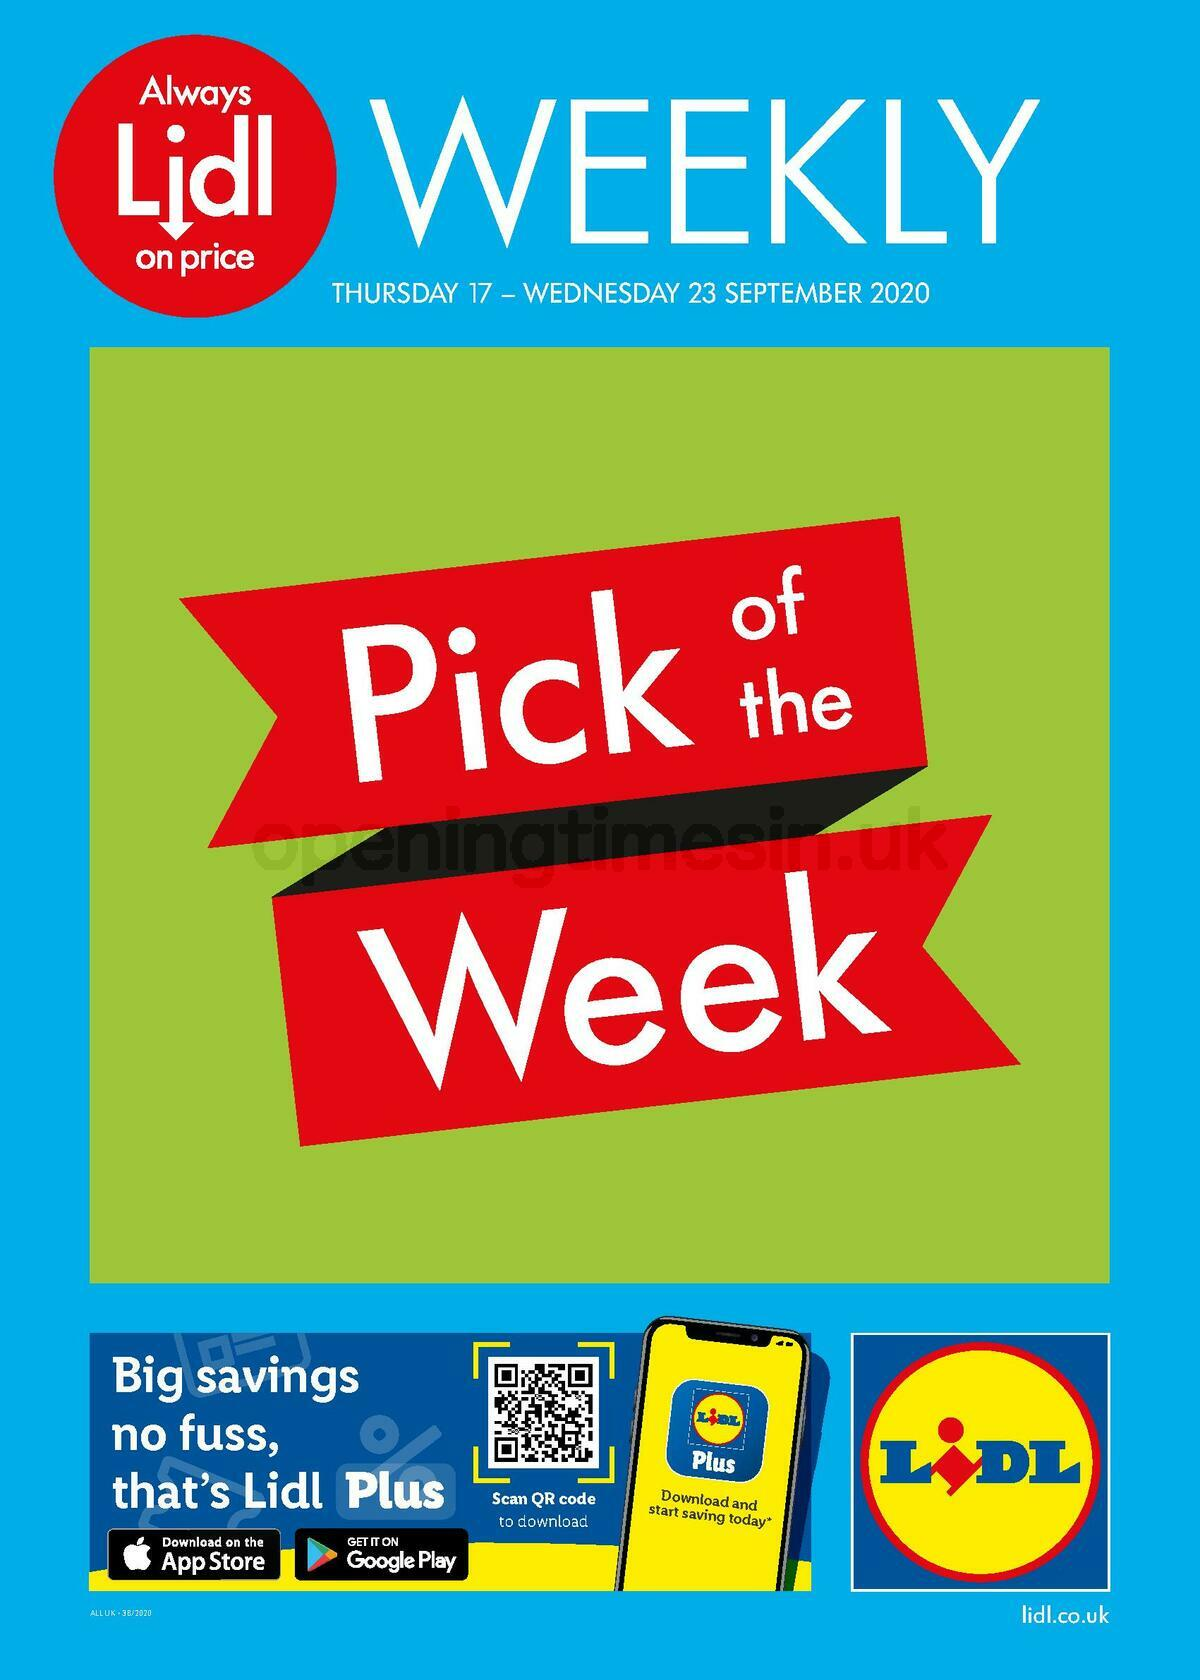 LIDL Offers from September 17